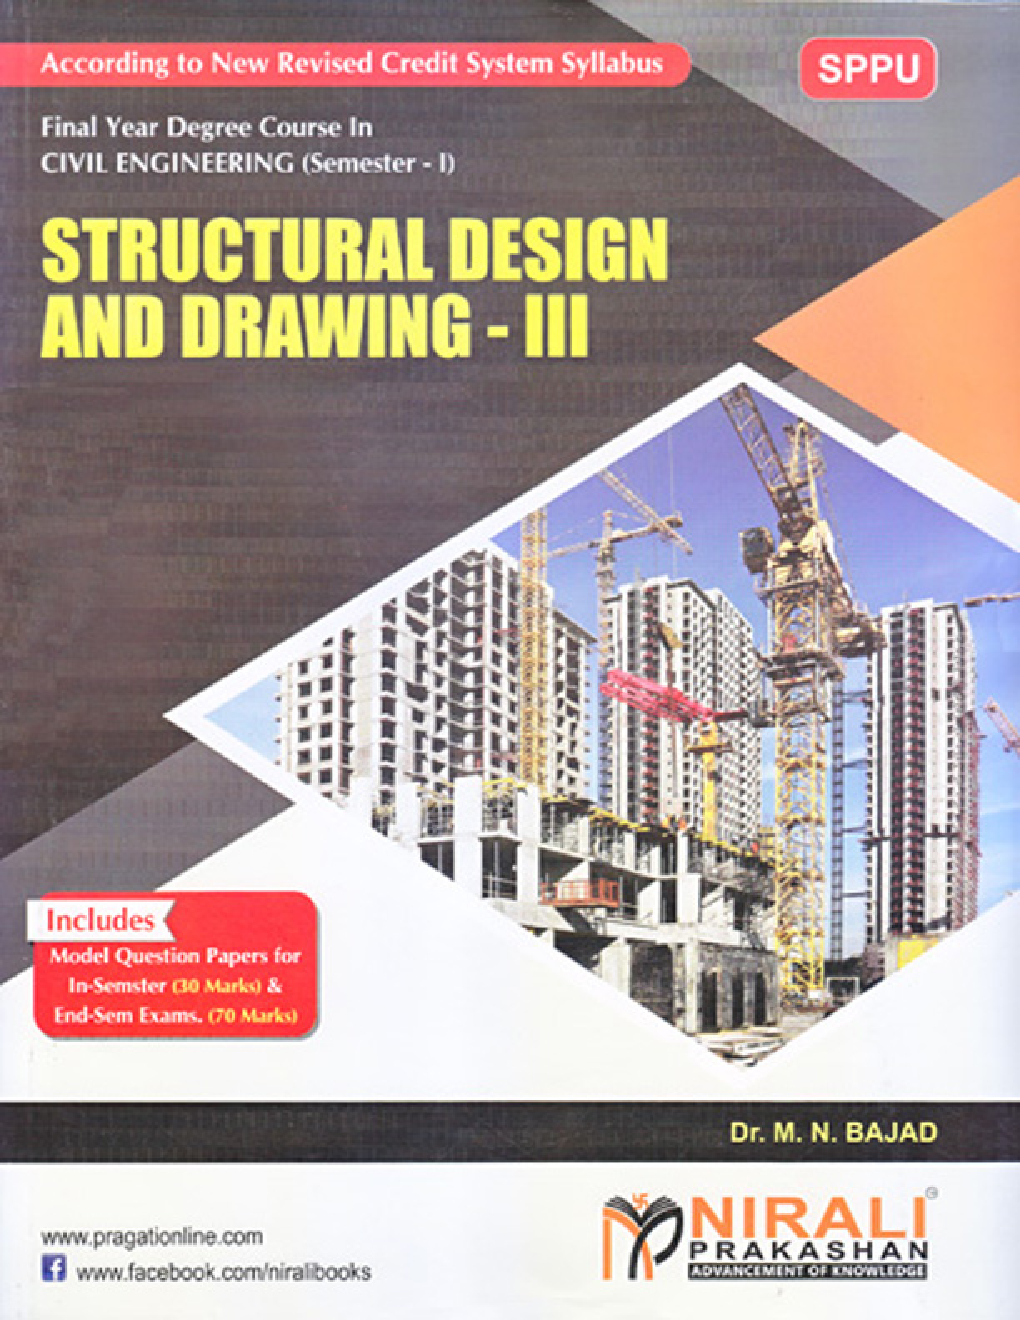 Structural Design And Drawing - III - Page 1